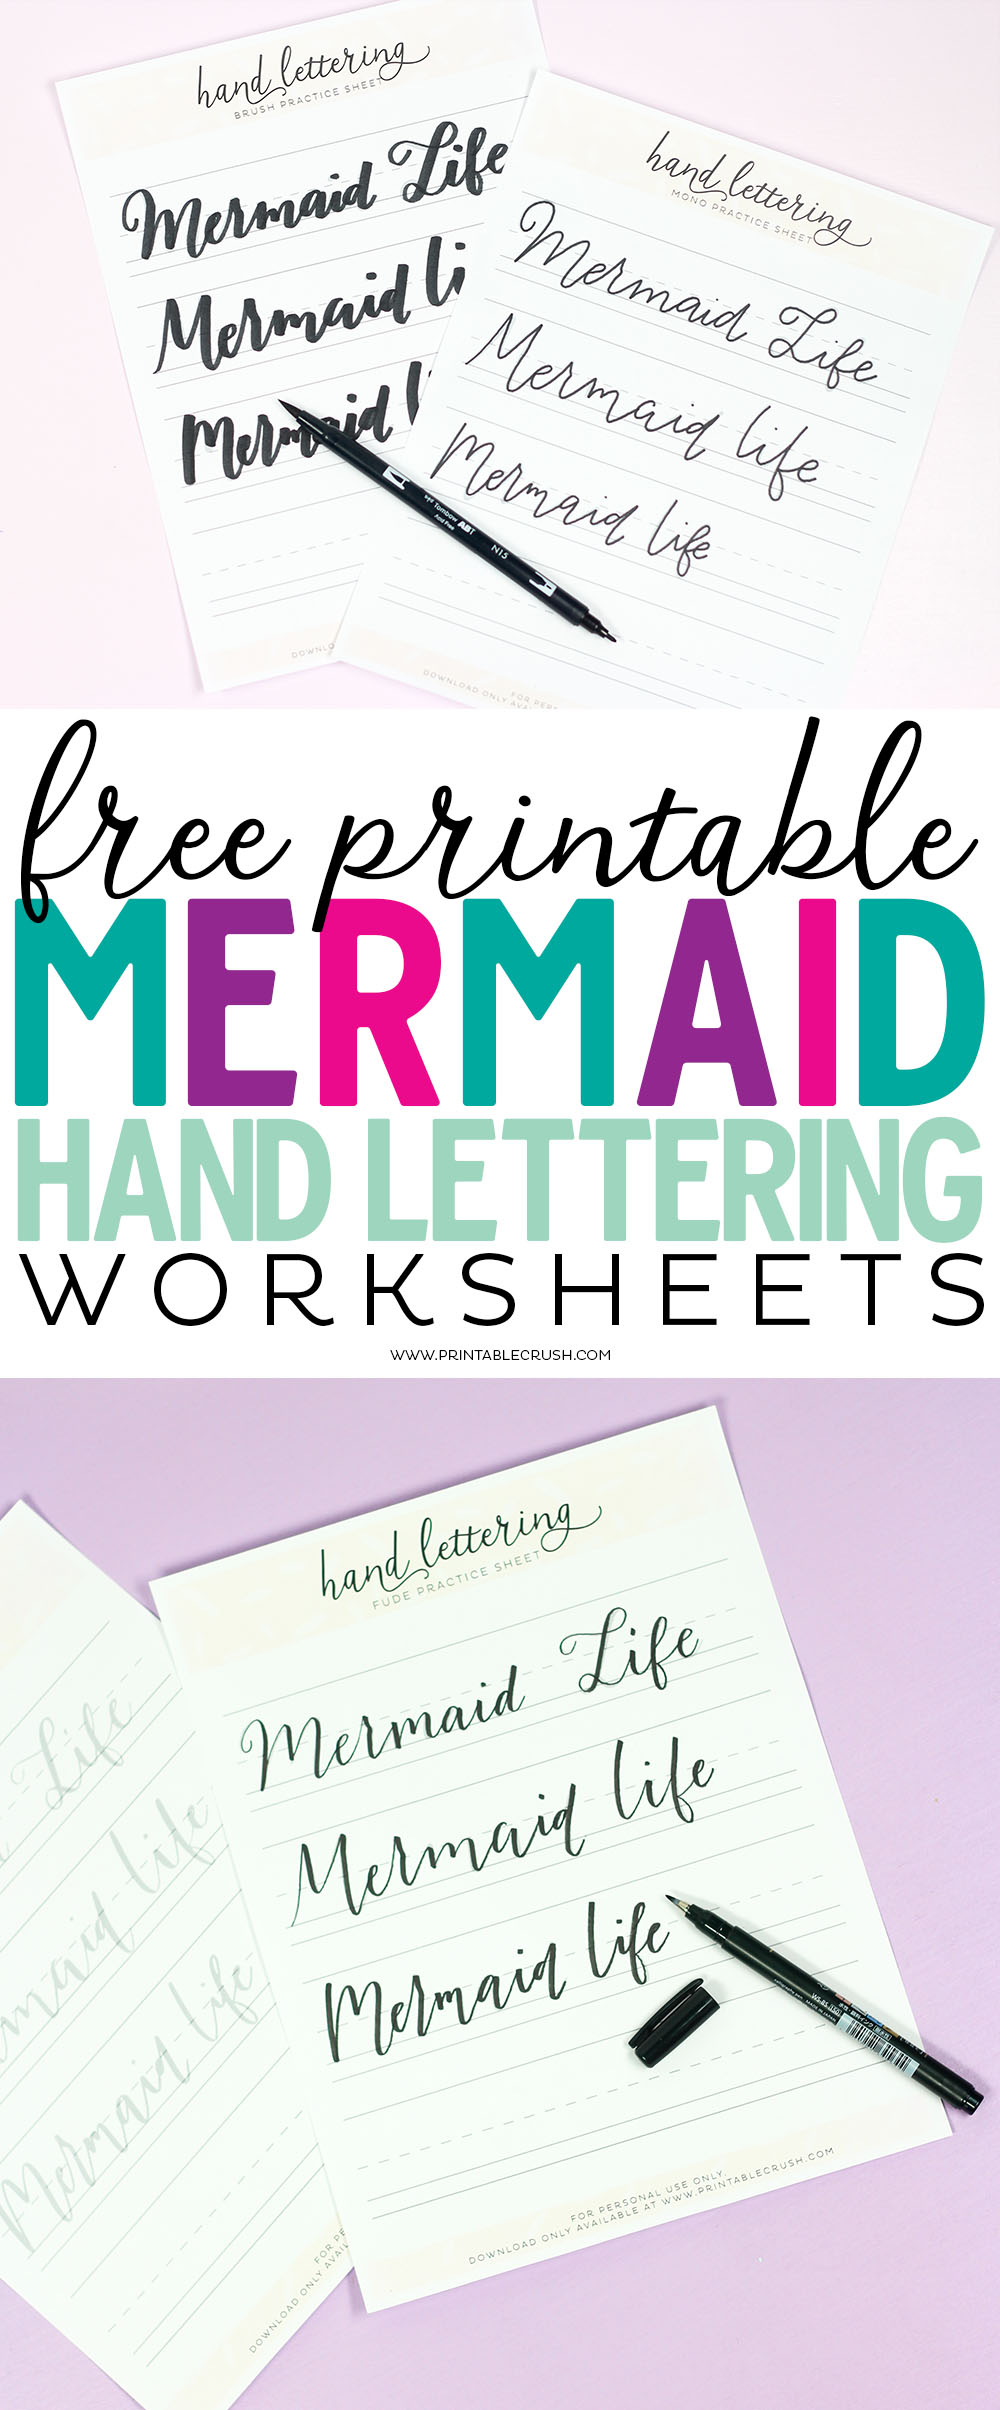 Enjoy these FREE Mermaid Life Brush Lettering Worksheets. Practice 3 different lettering styles and use 3 different Tombow brush pens or lettering pens.